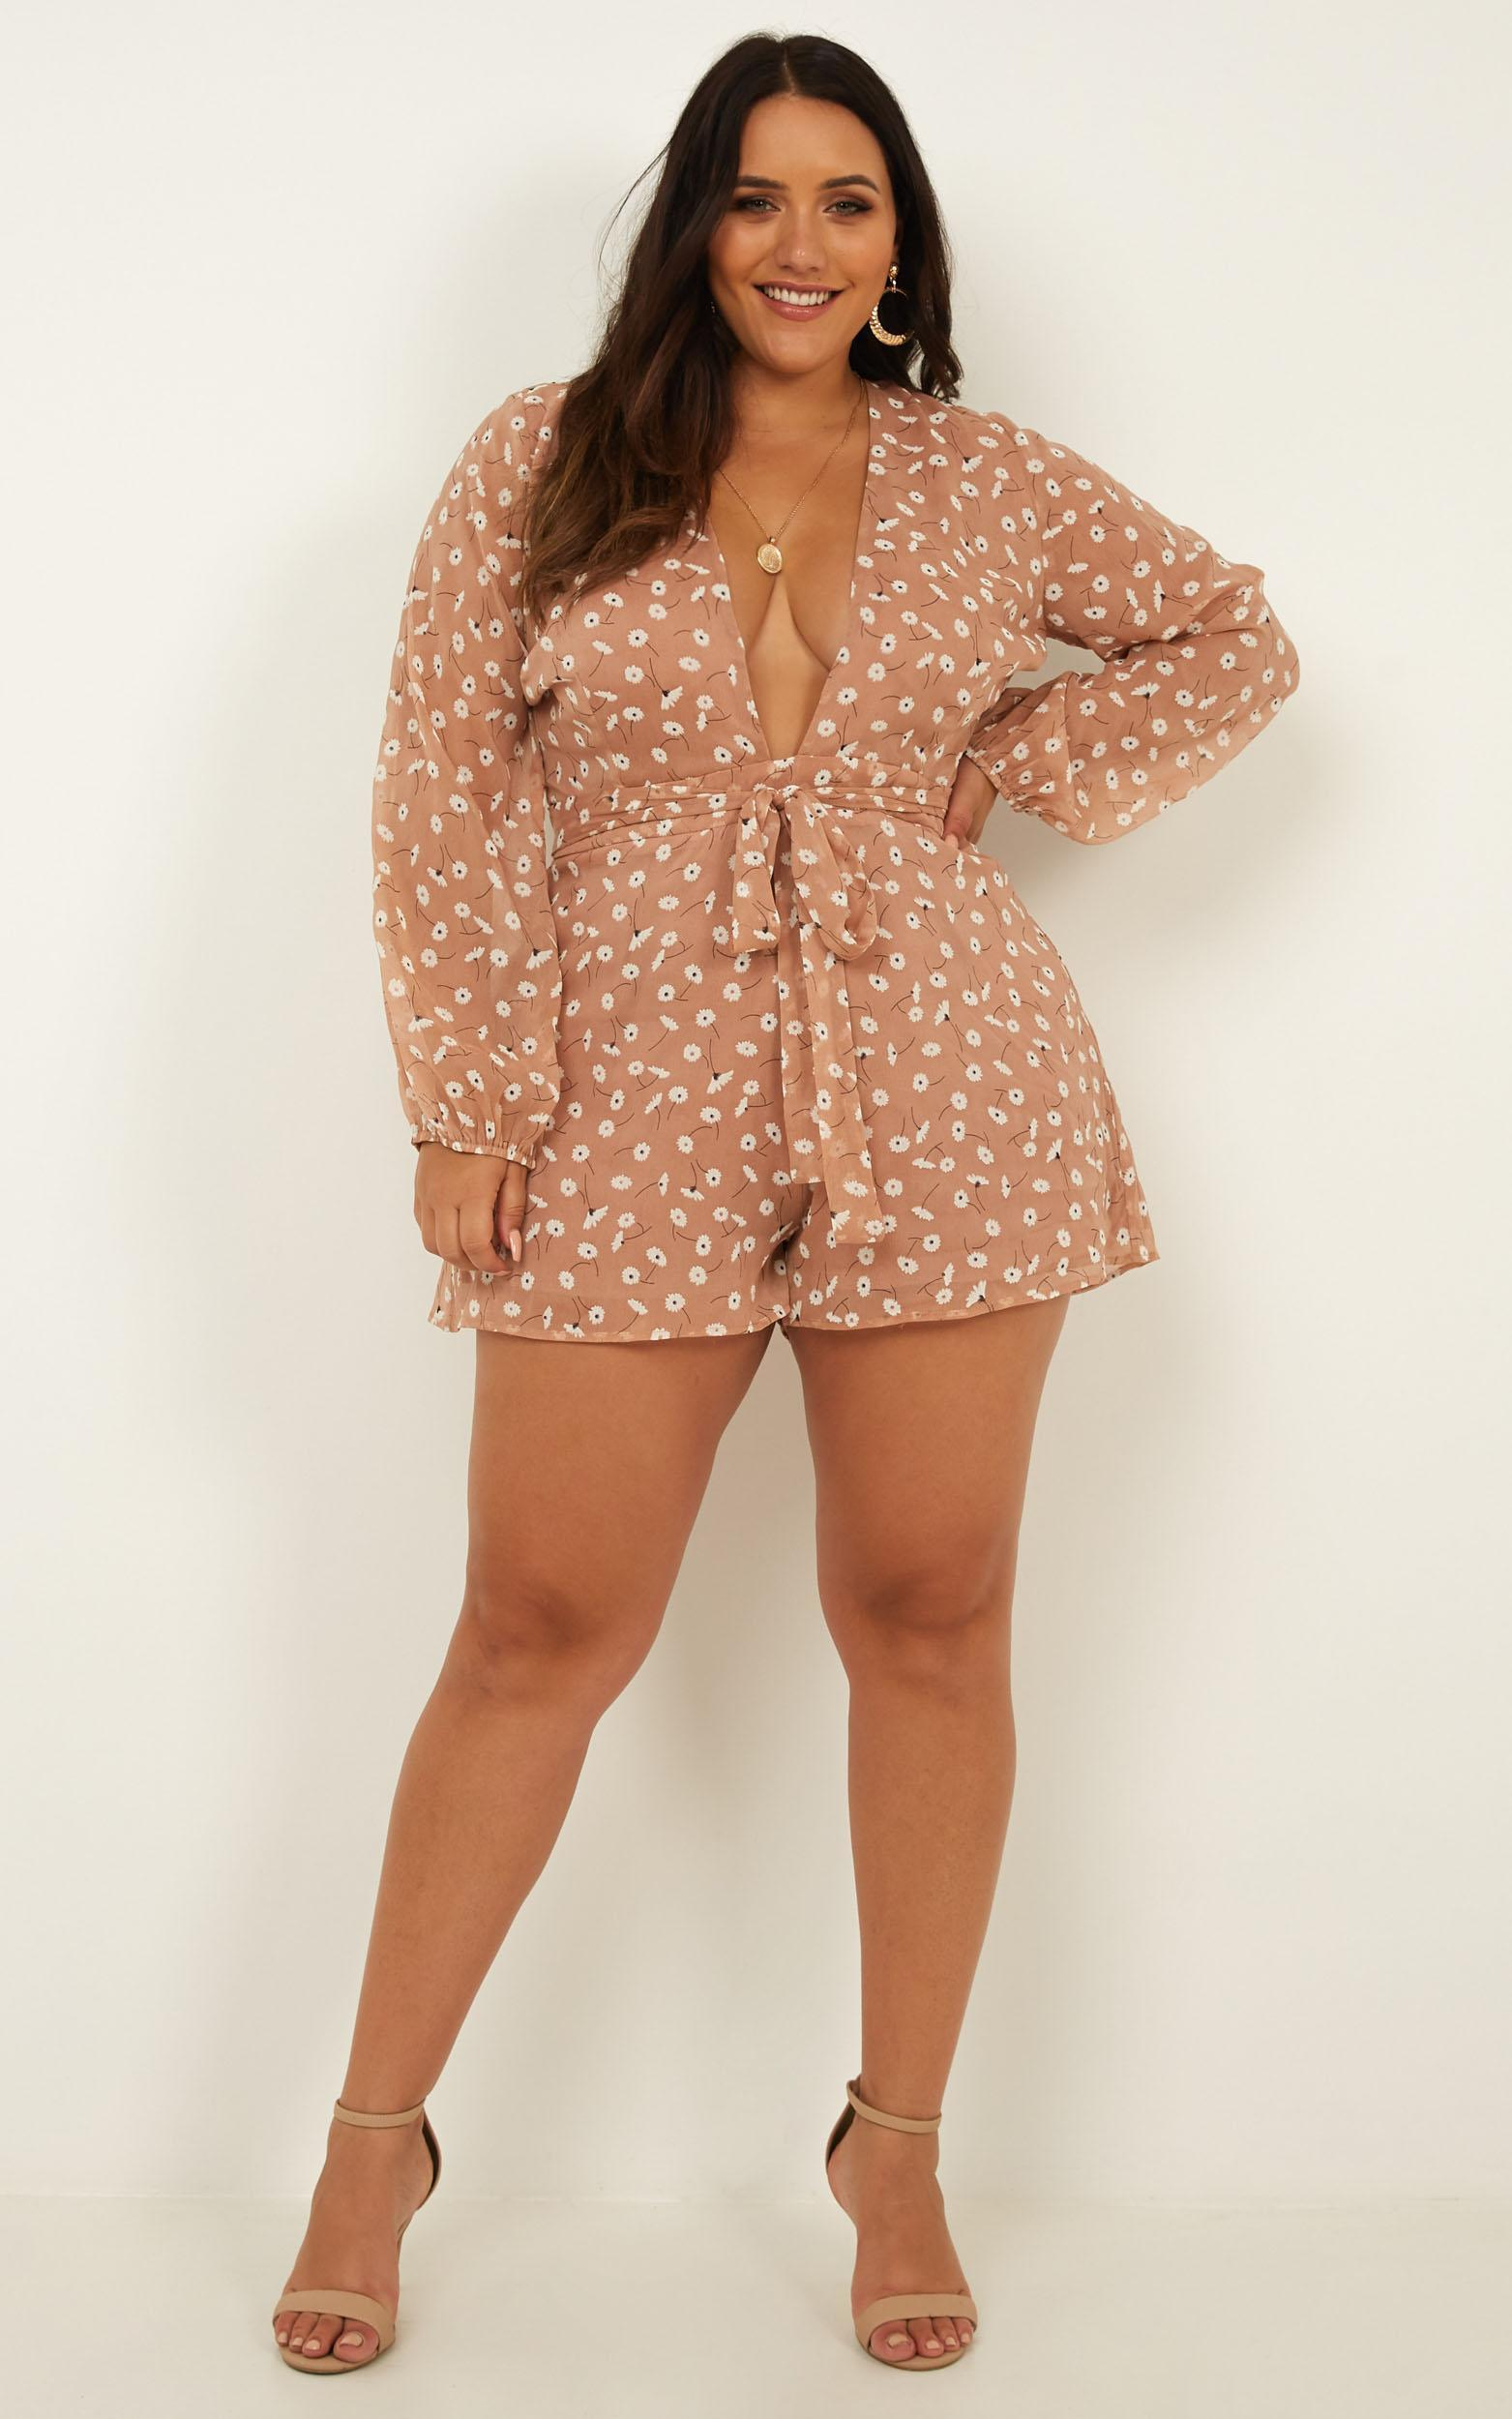 Wheels Bouncing Playsuit In blush floral - 18 (XXXL), Blush, hi-res image number null